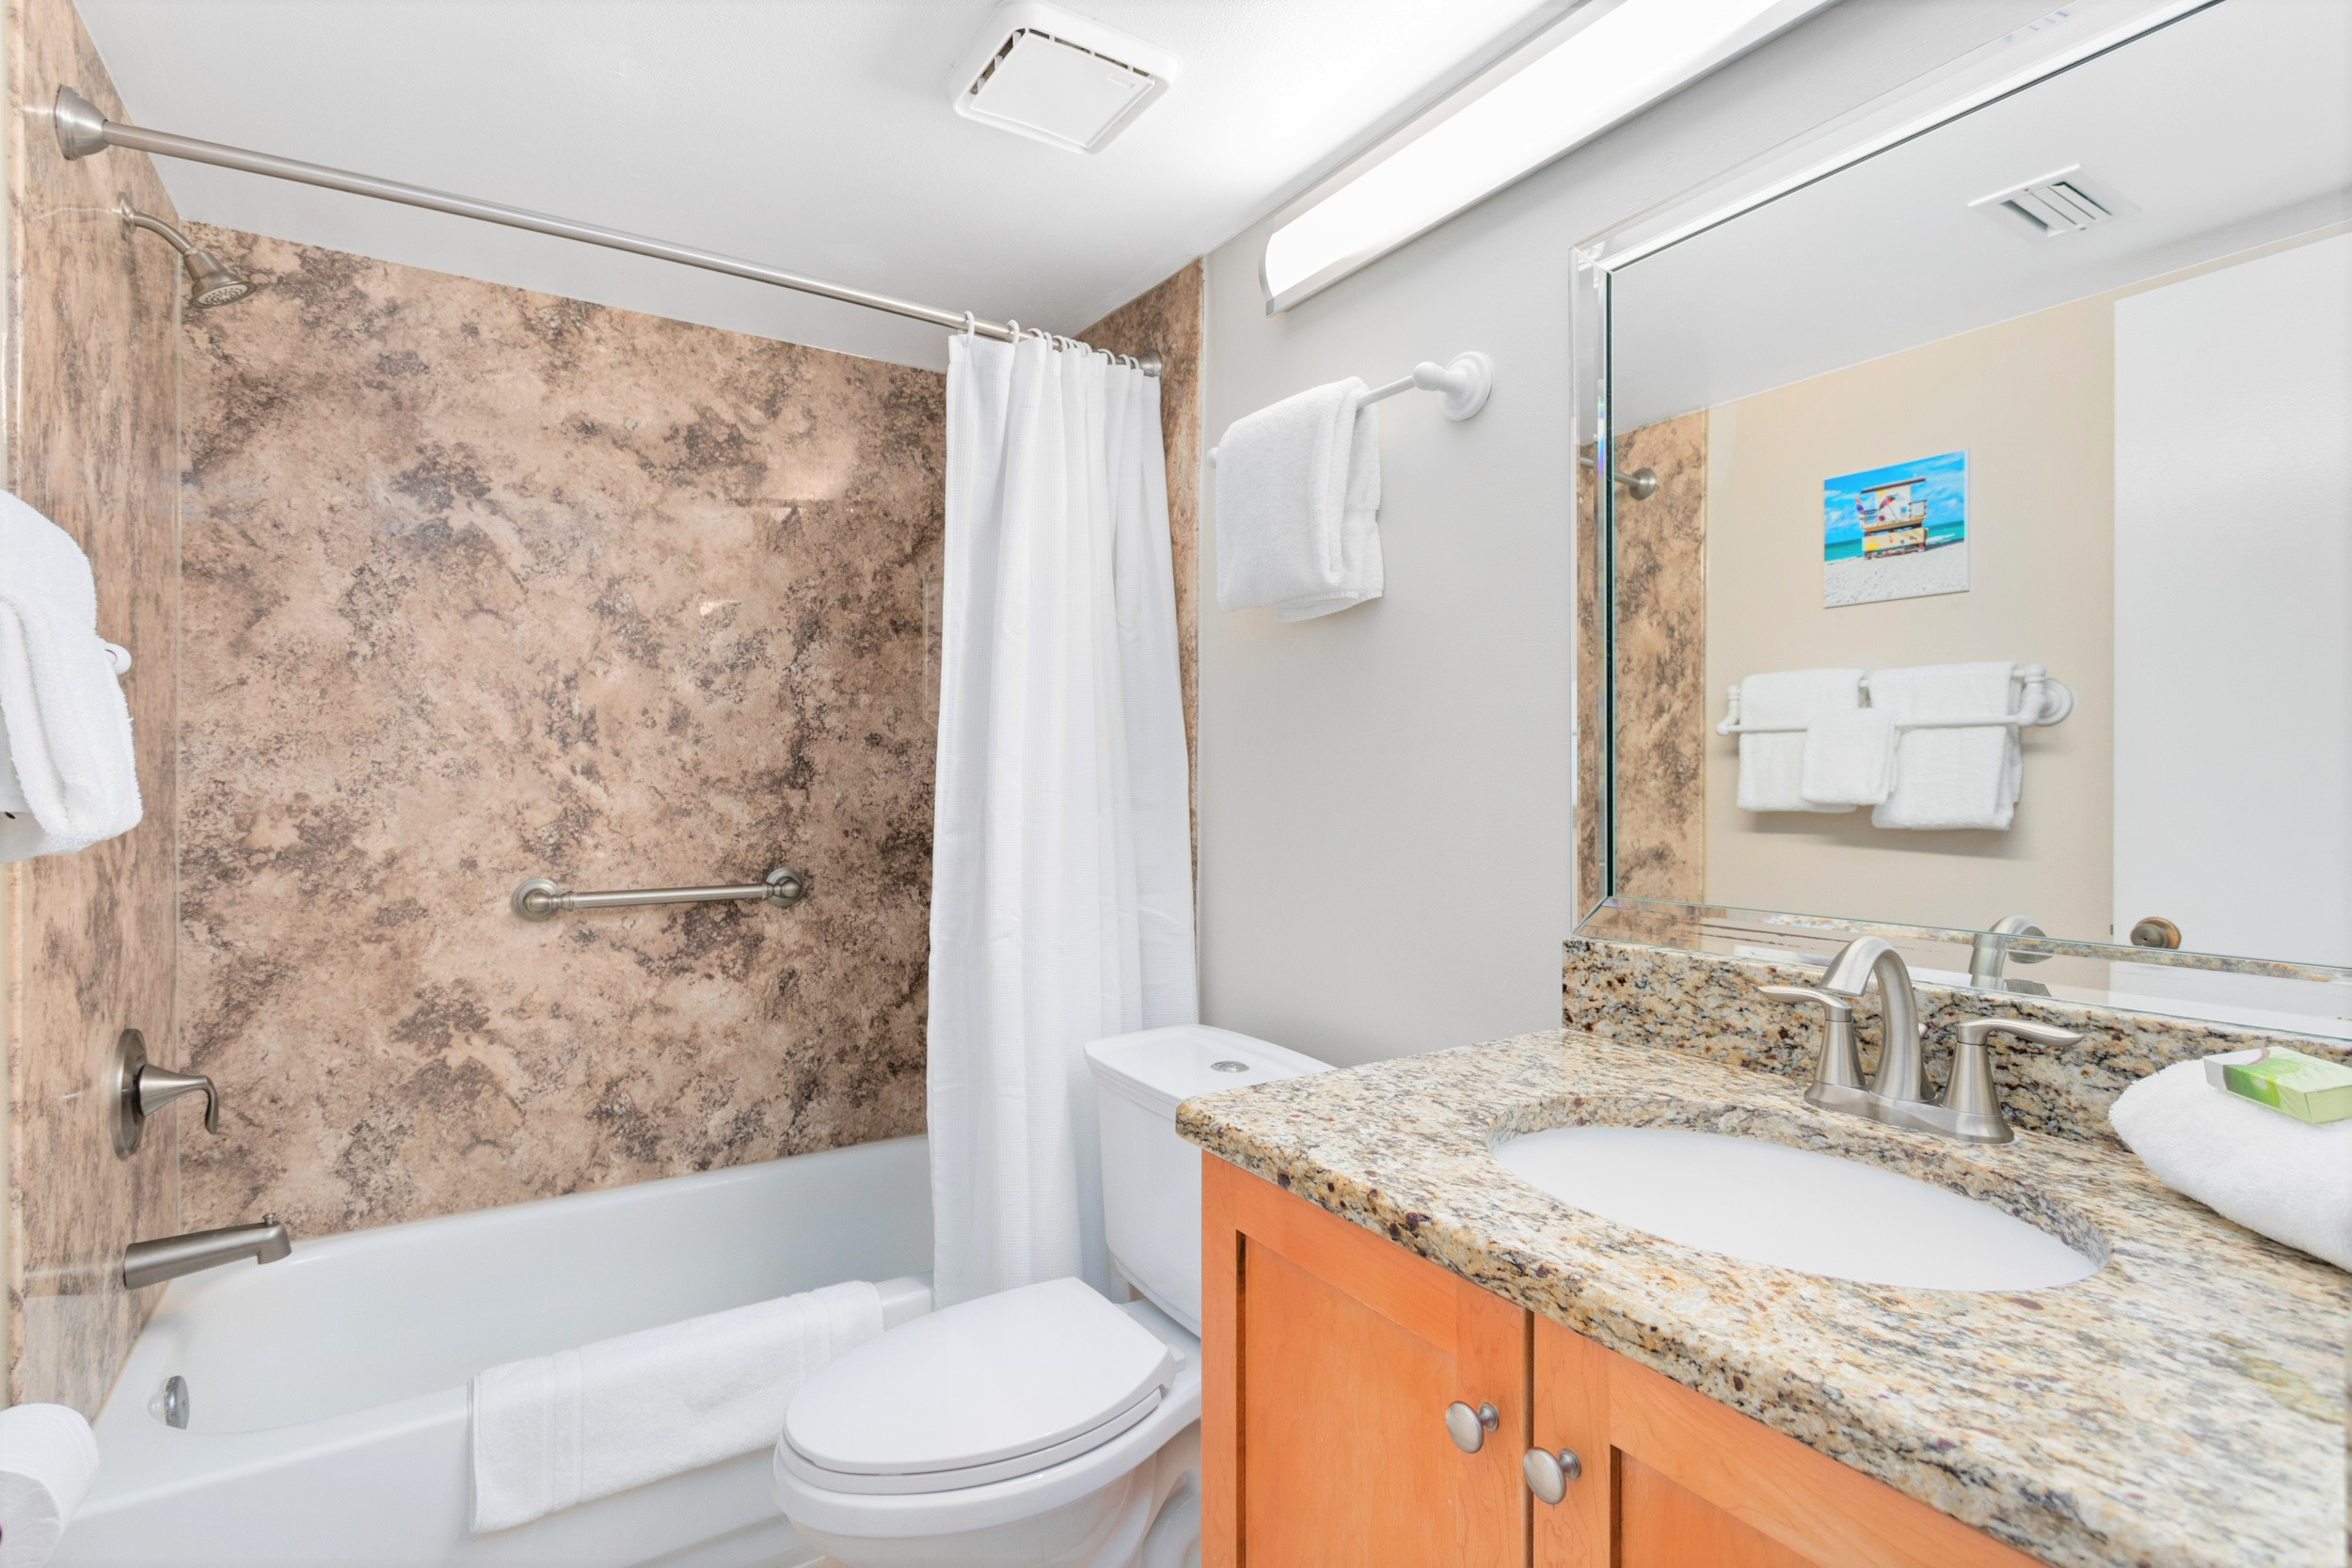 Completely renovated guest bathroom with tub/shower